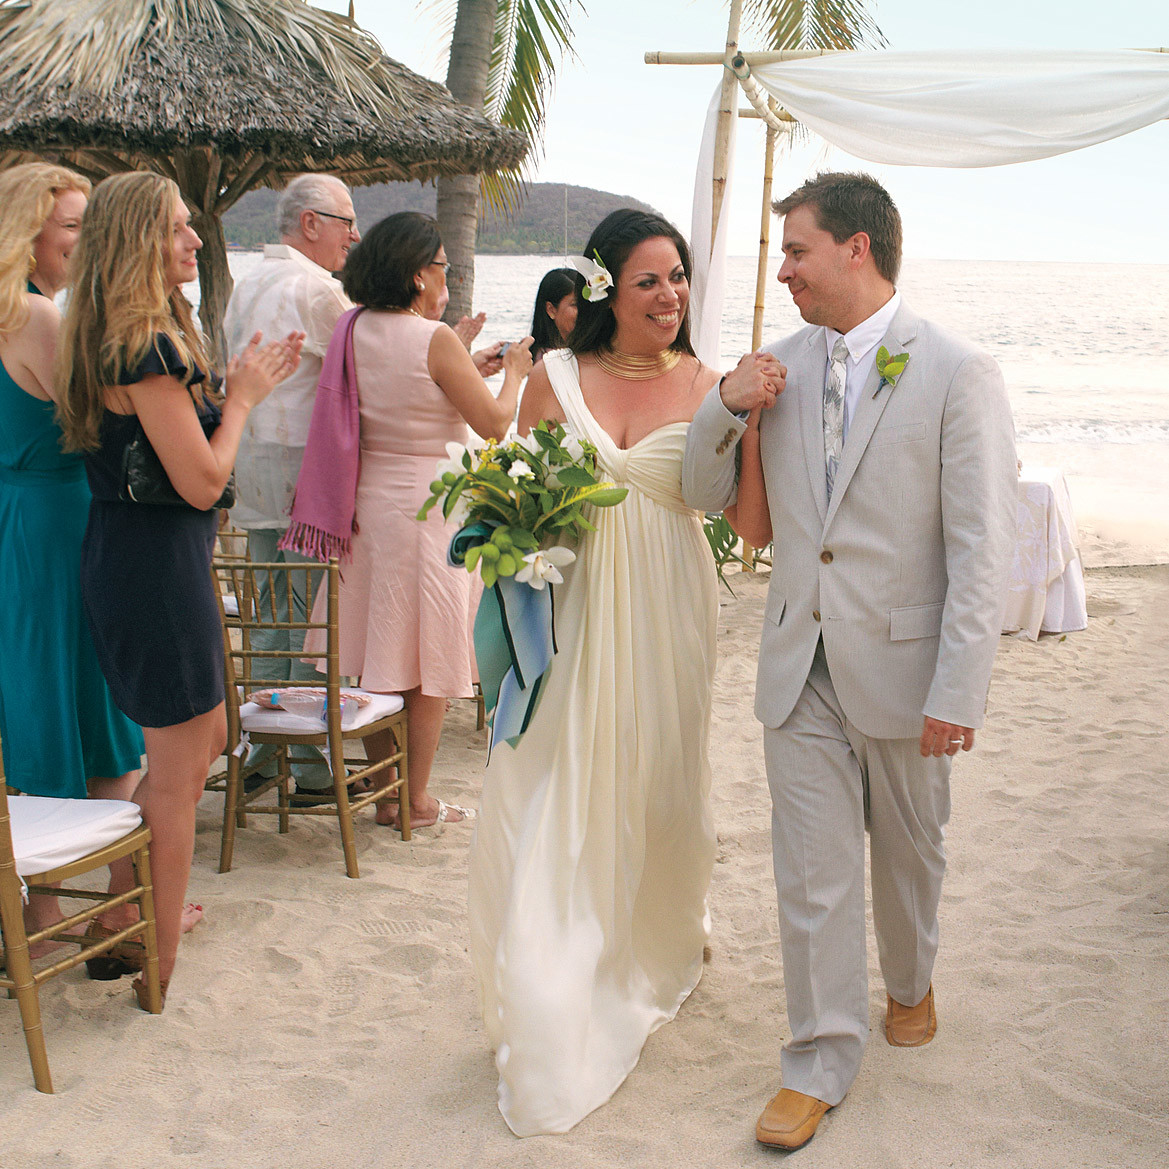 A Navy-and-White Destination Wedding On The Beach In